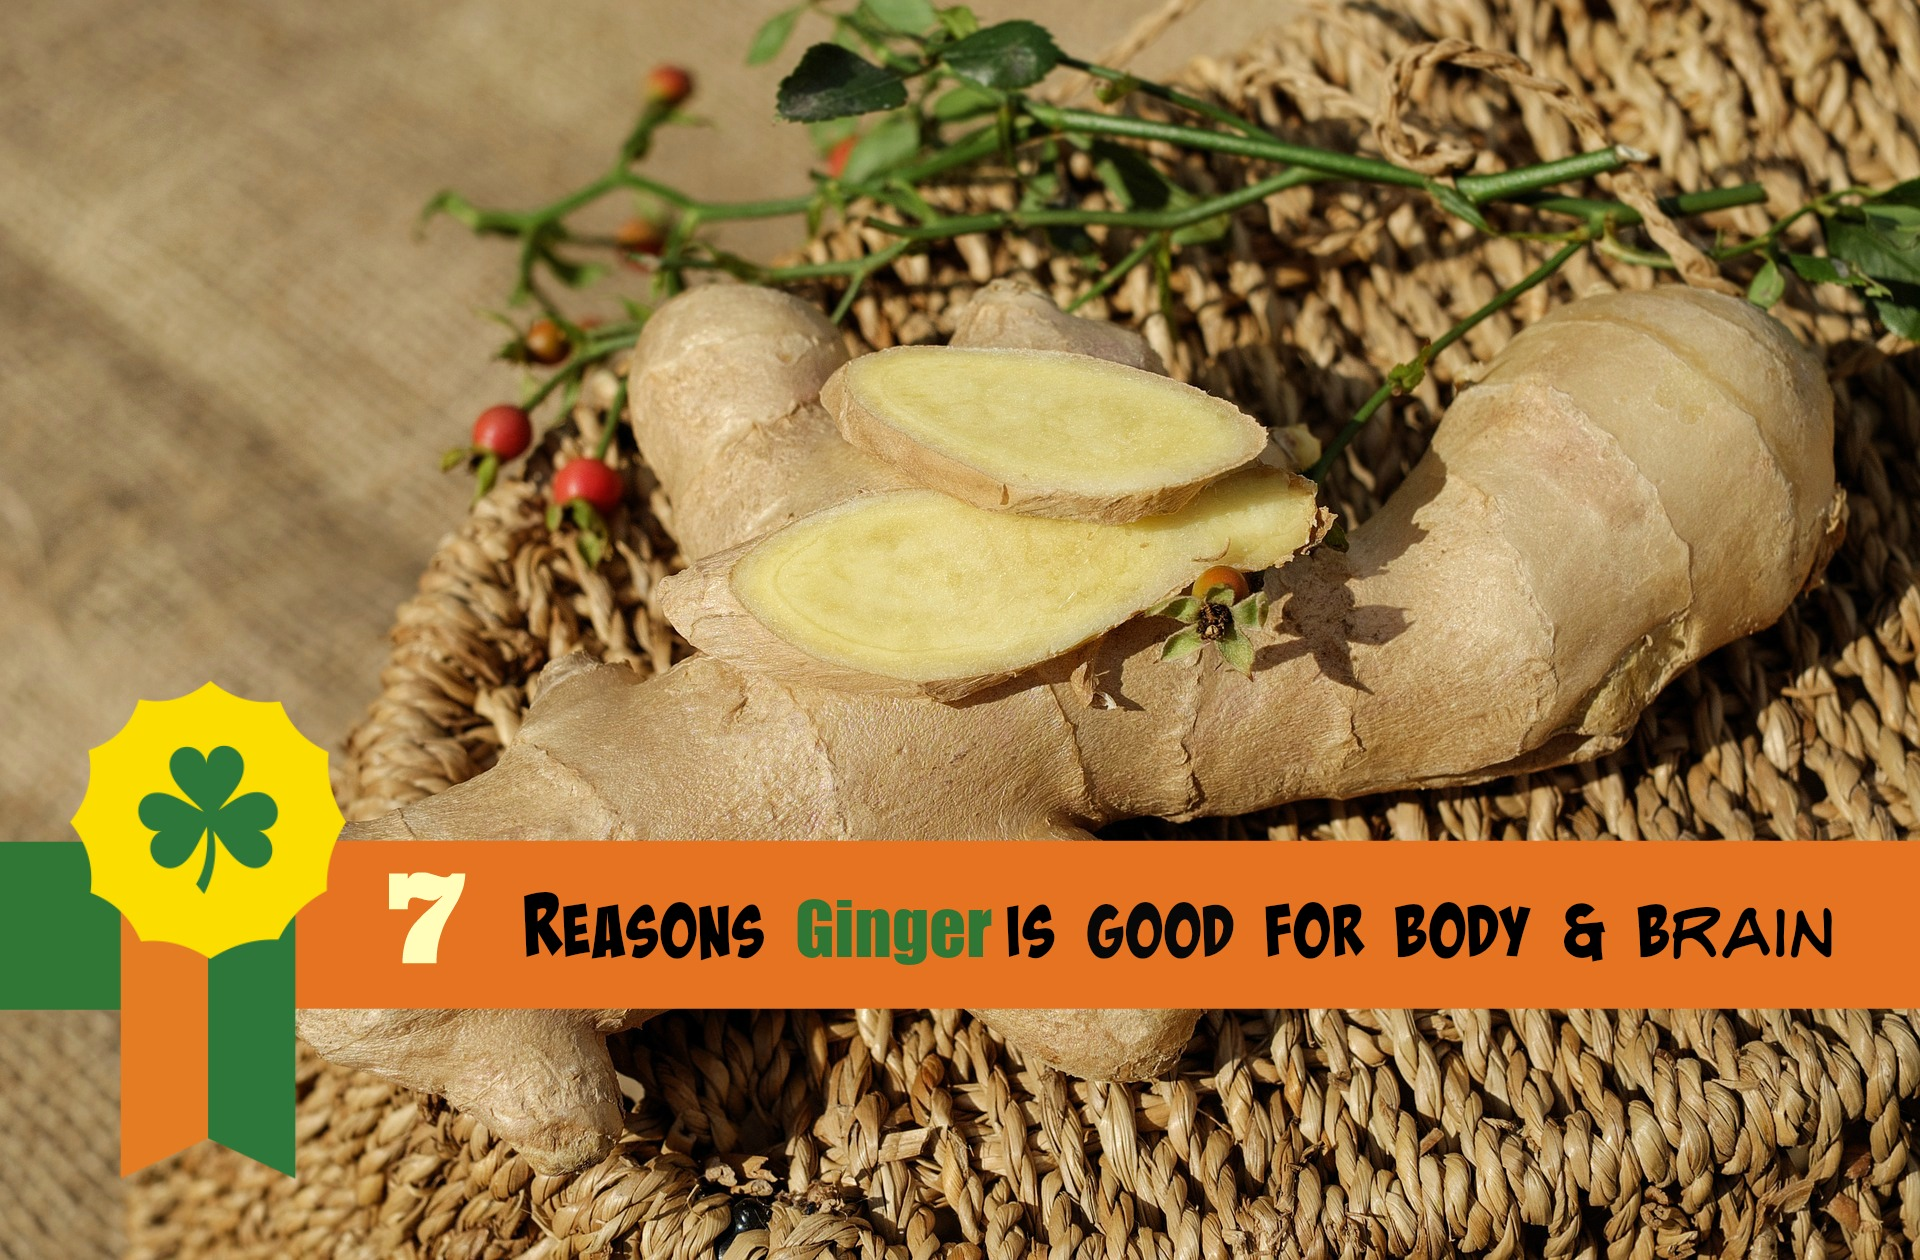 7 Remarkable Reasons Ginger Is Good for Body & Brain